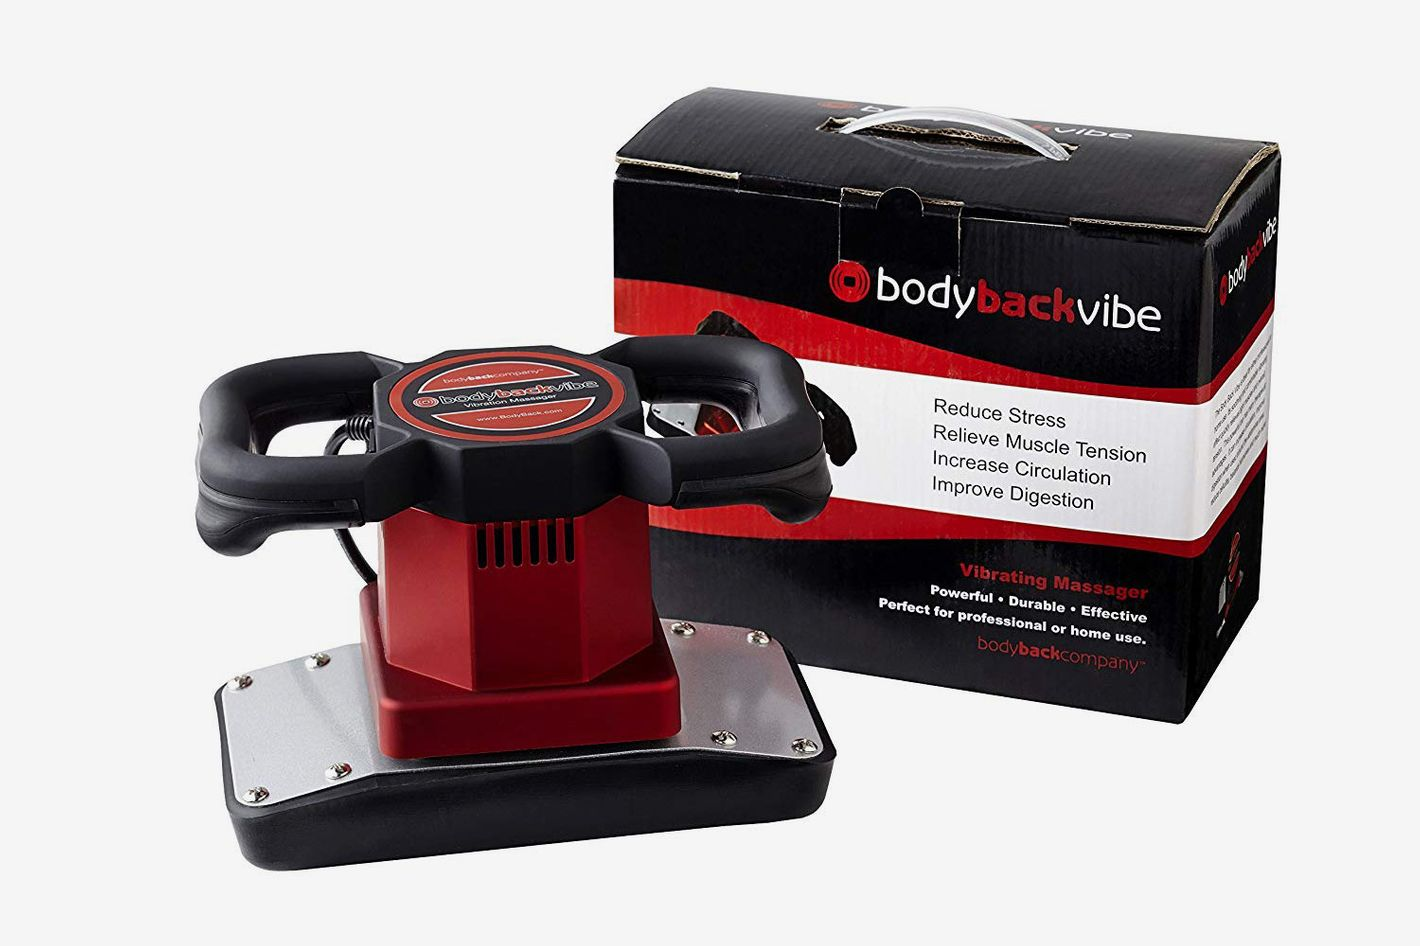 Body Back Company's Vibe Dual Speed Electric Professional Massager